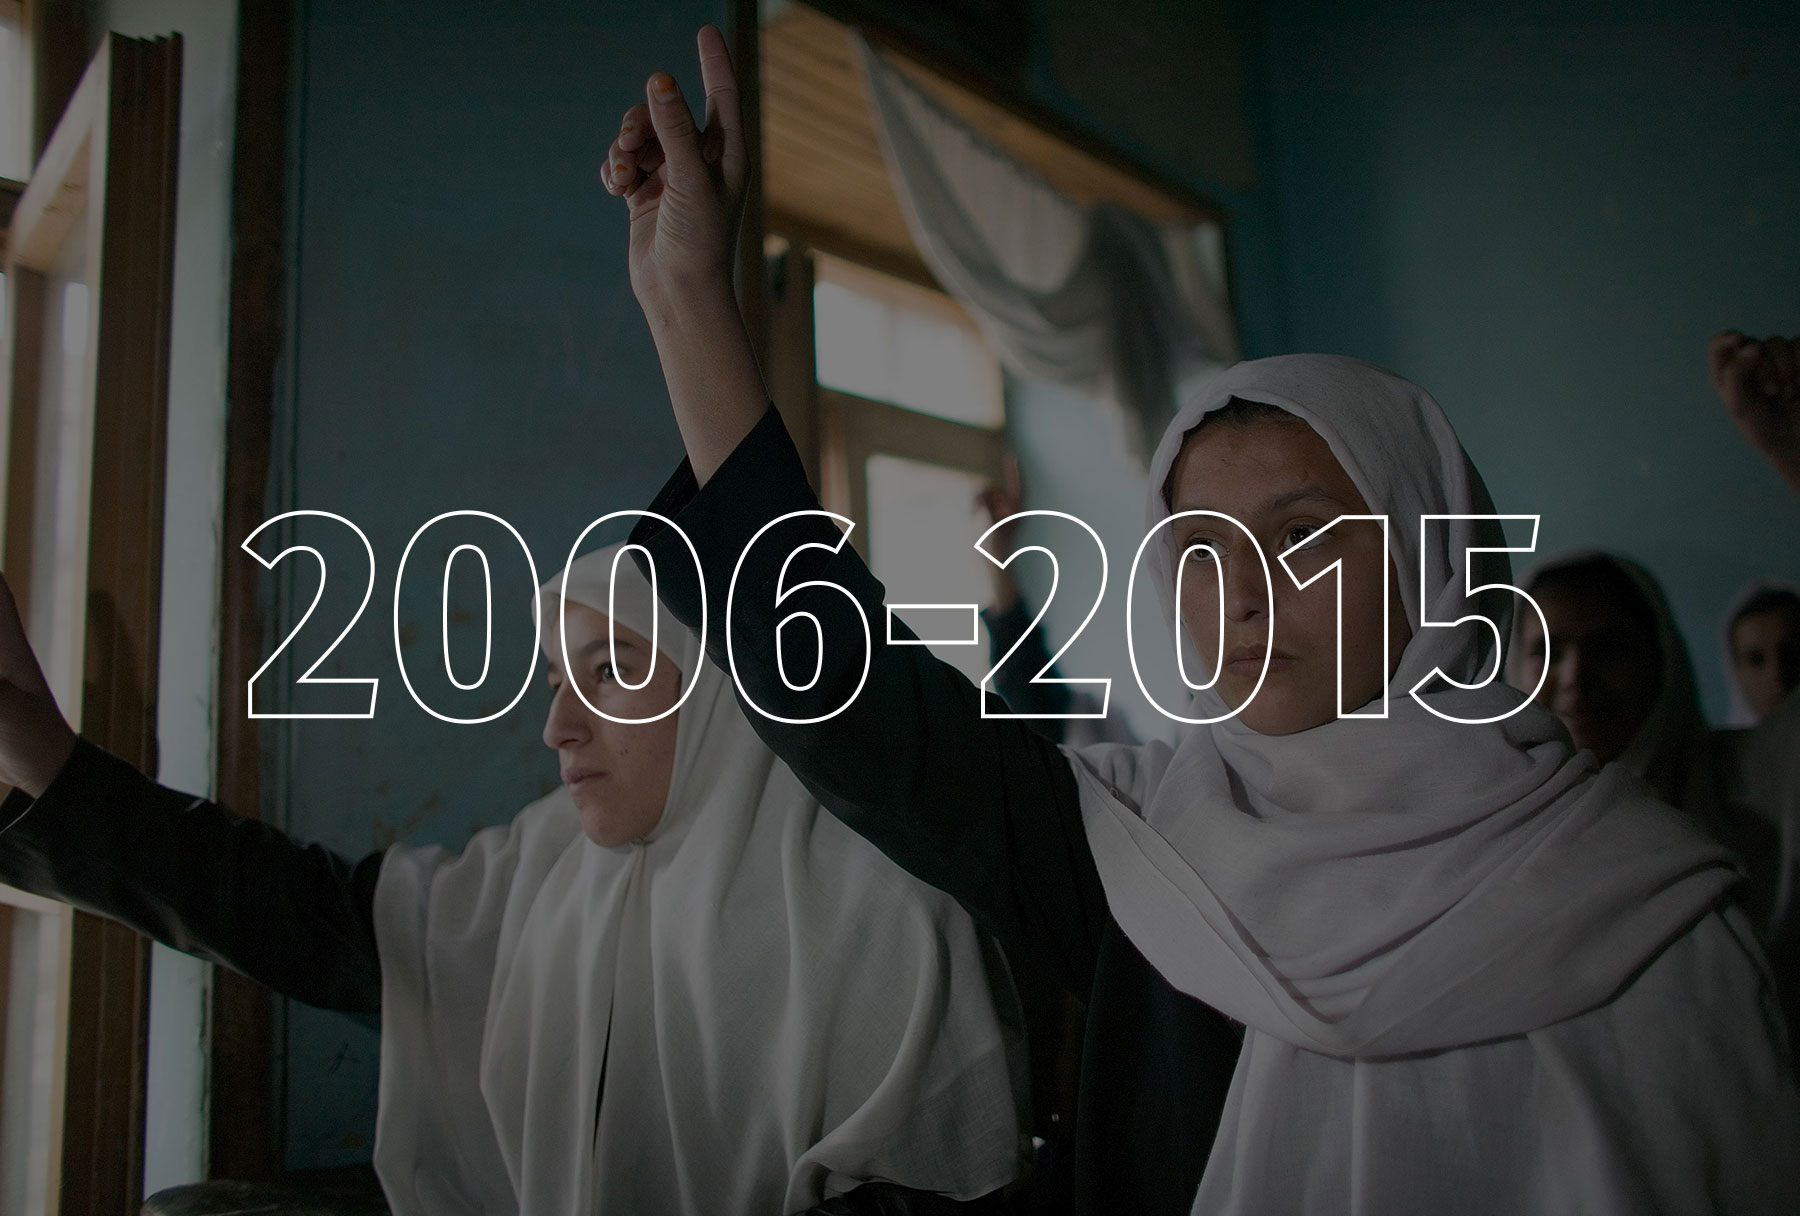 Two teenaged girls wearing dark long-sleeved shirts and white headscarves raise their right hands.